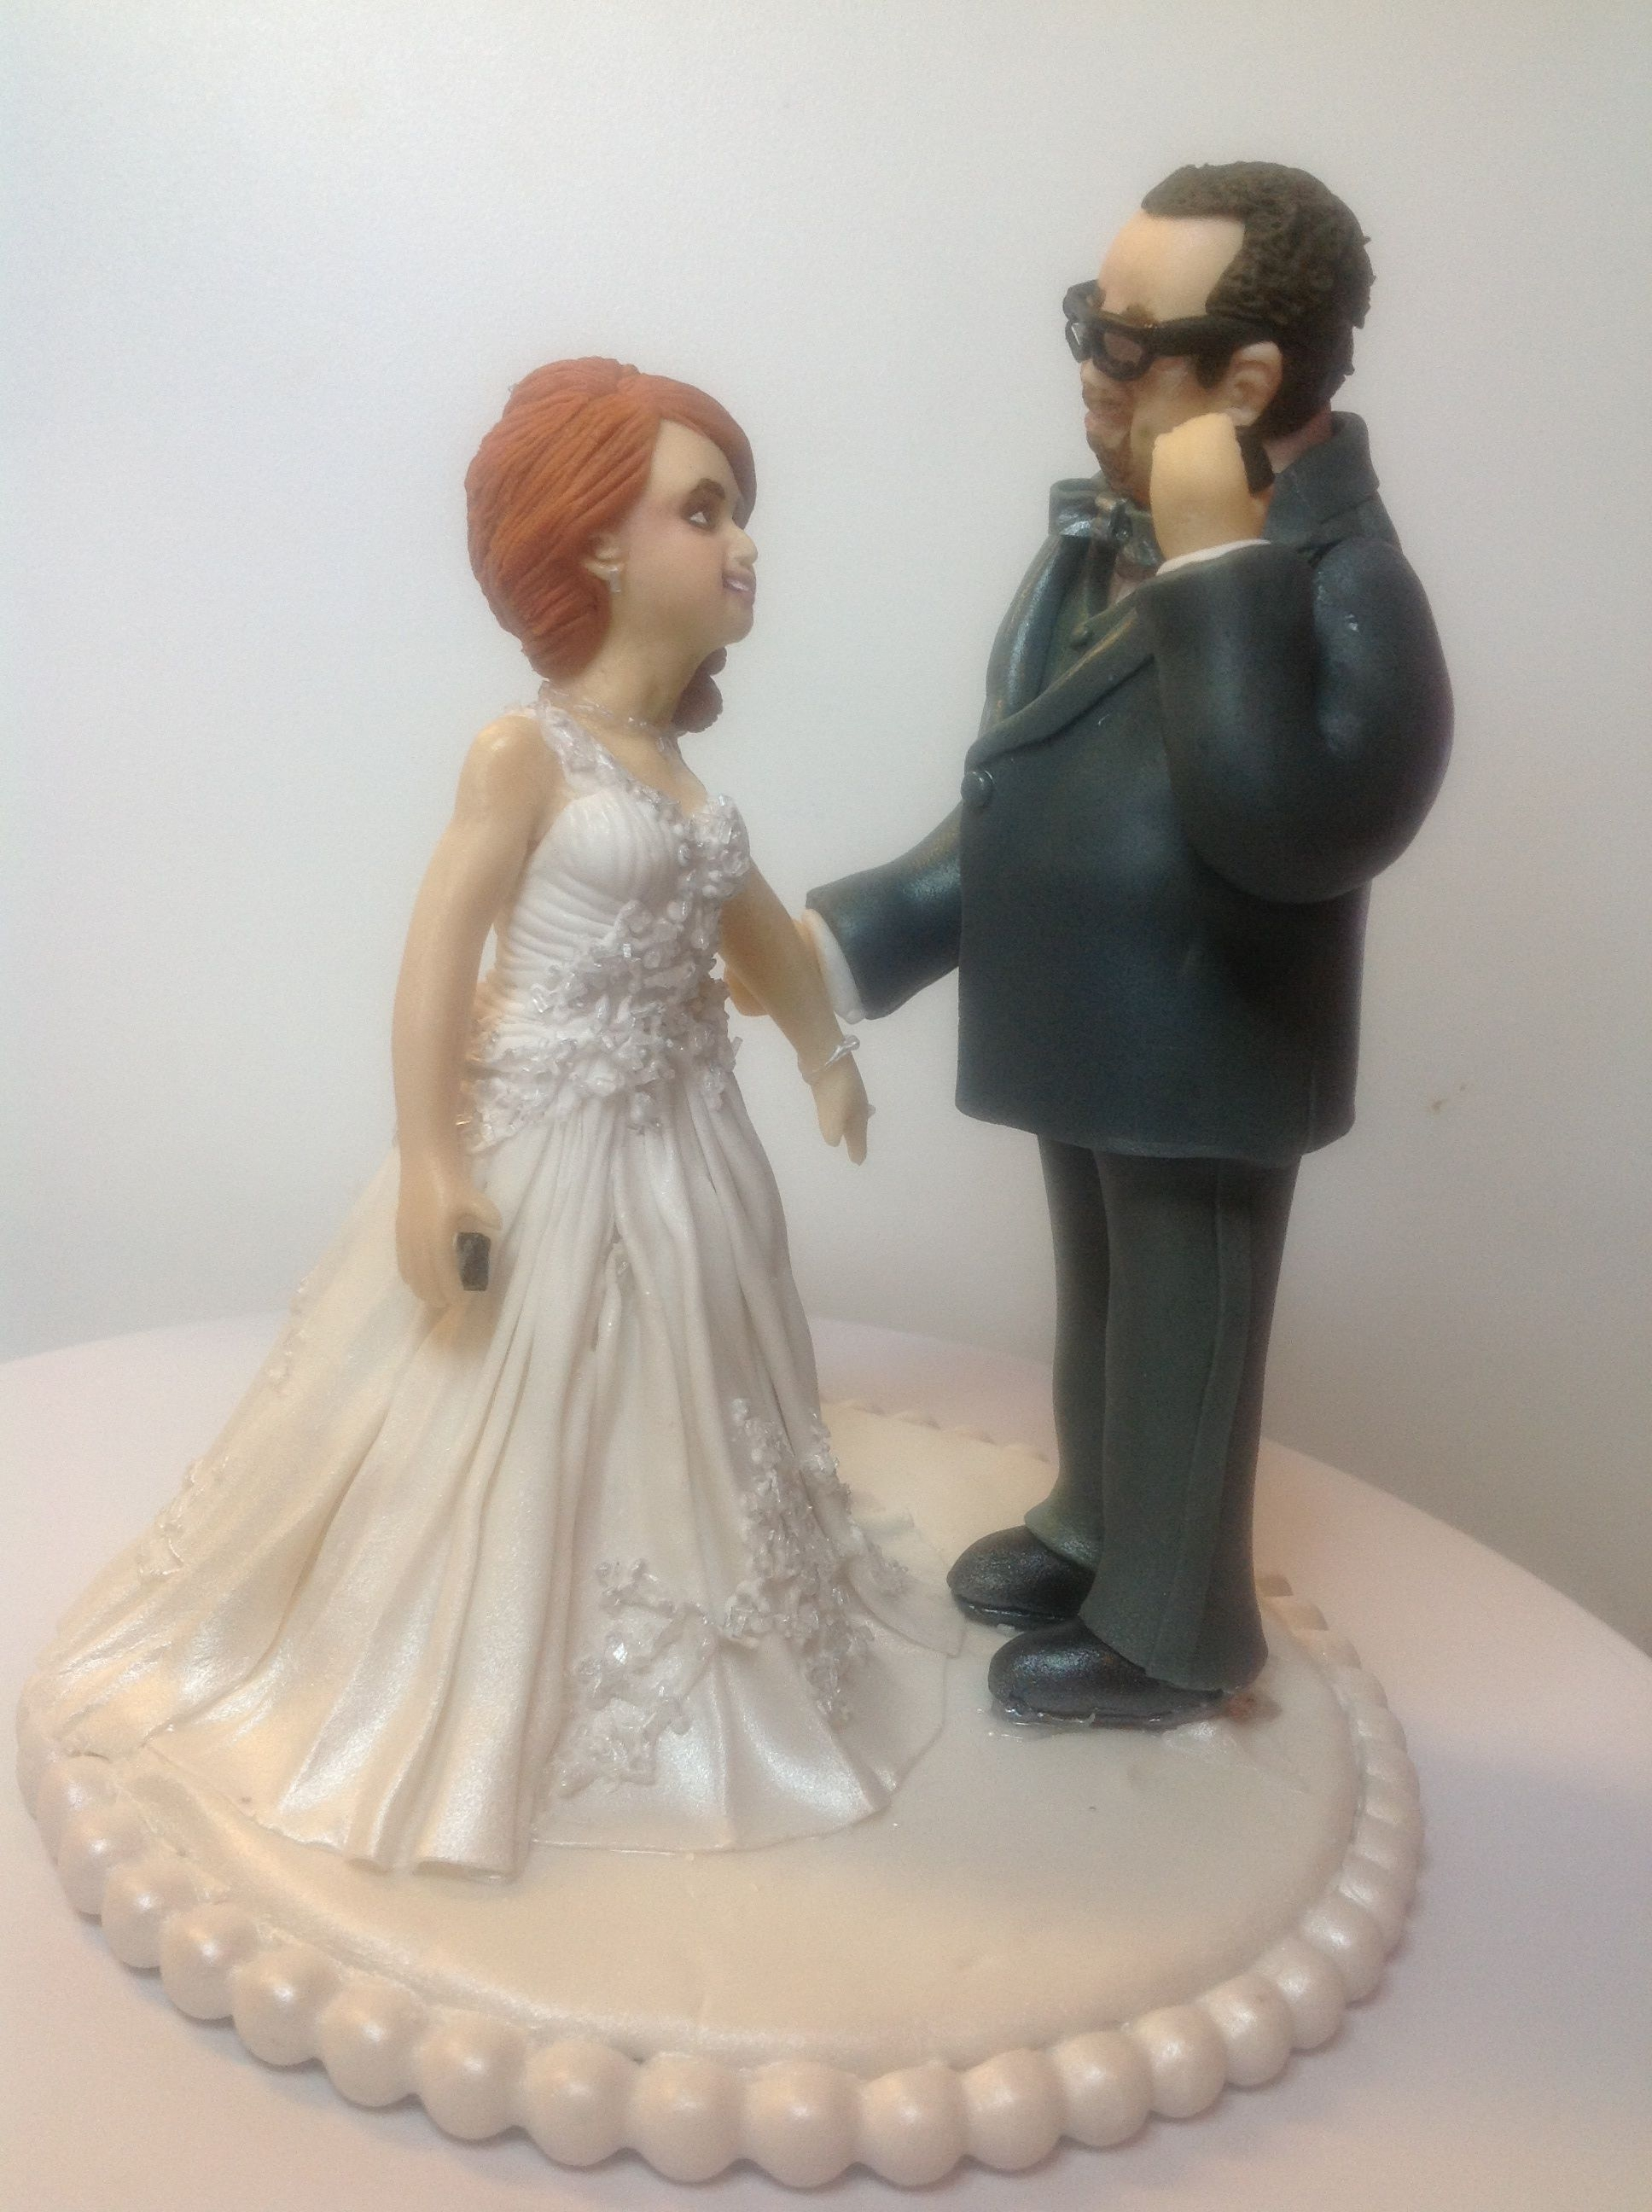 Wedding Cake Topper 100 Edible Figurines Are Made Fondant